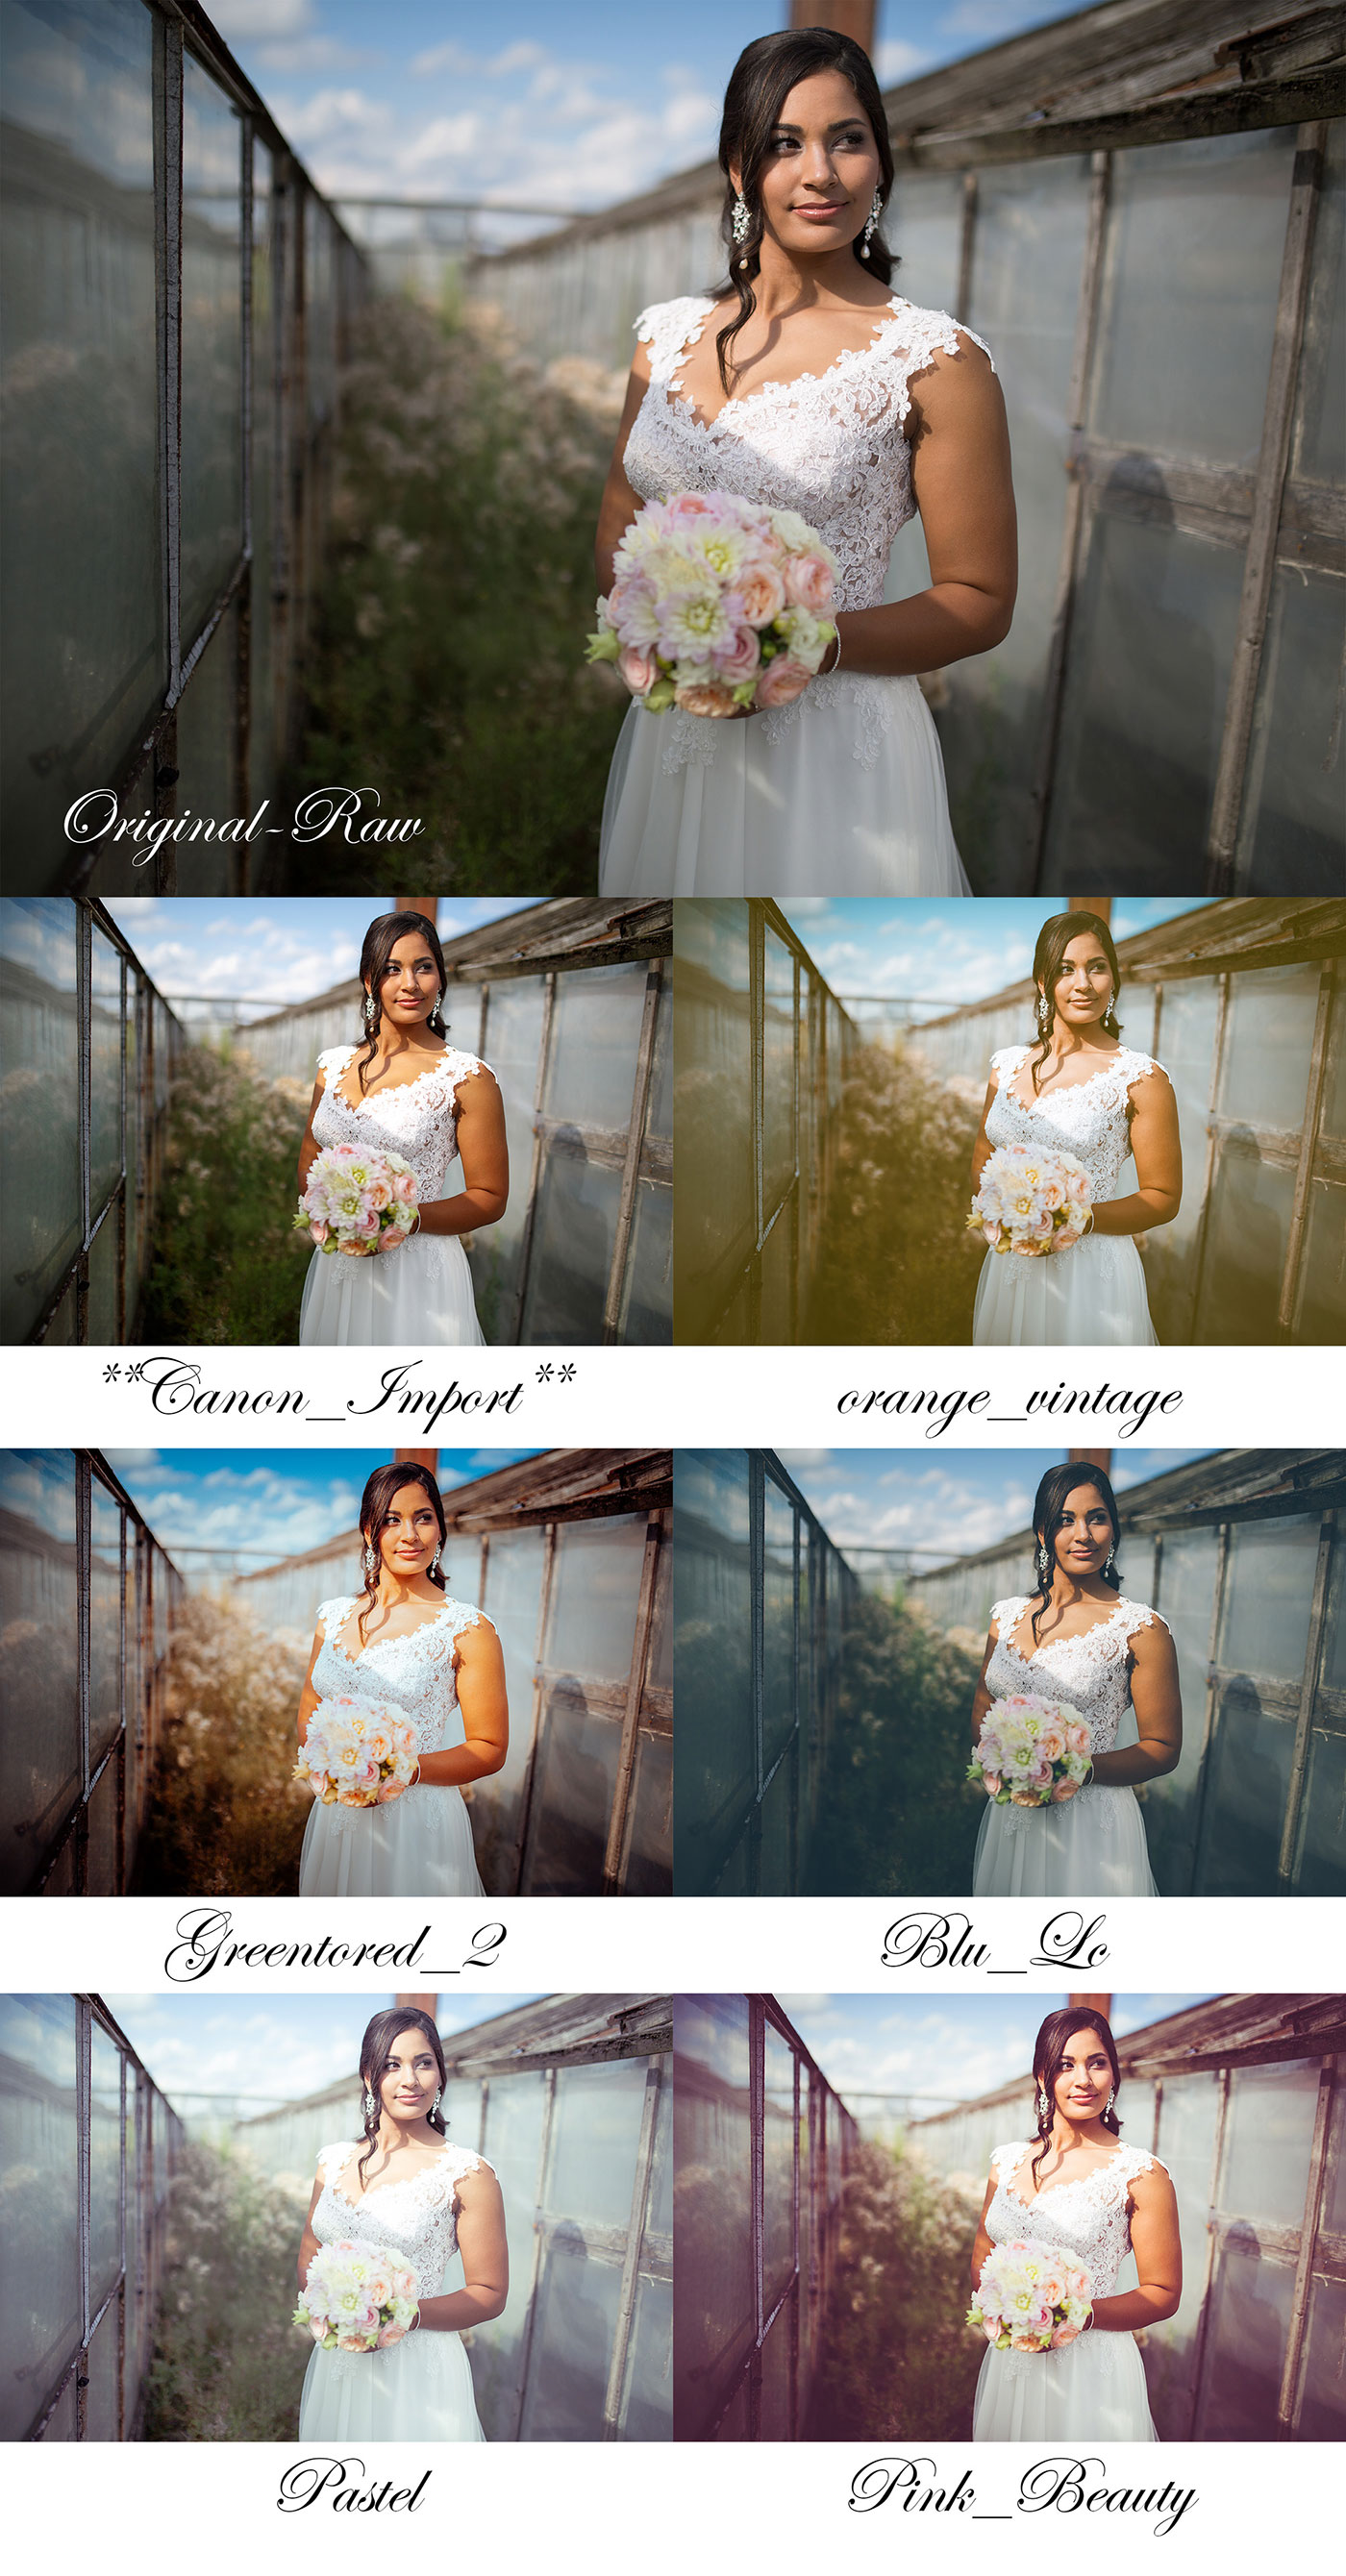 Mariella-Look-Bundle: Lightroom-Presets (24) - Mariella Vagabundo